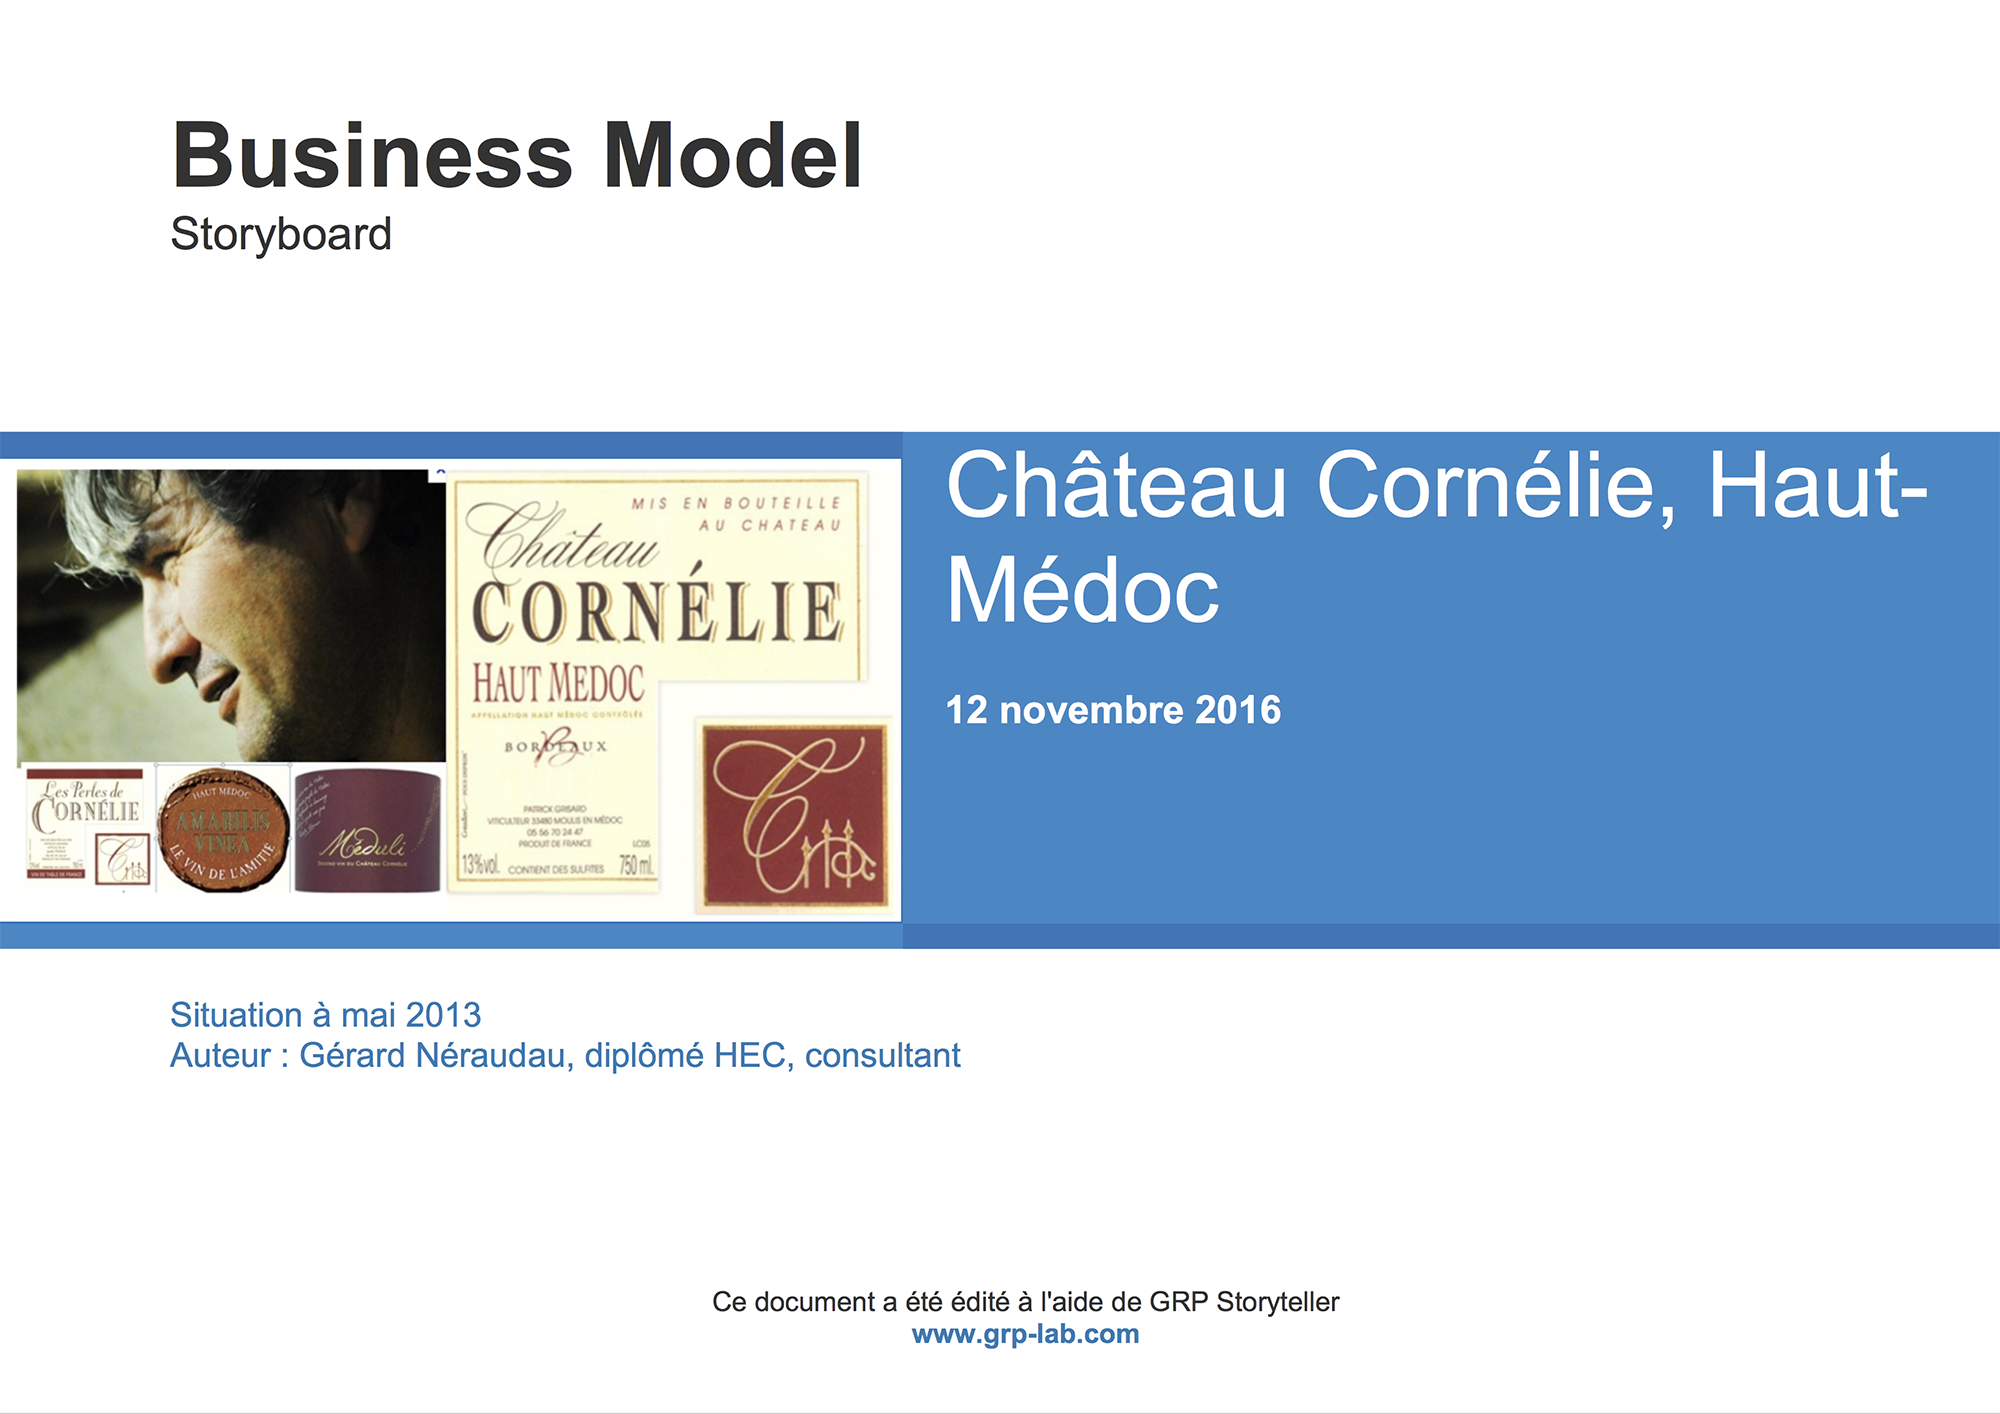 Le Comptoir Français - Business Model Version Storyboard